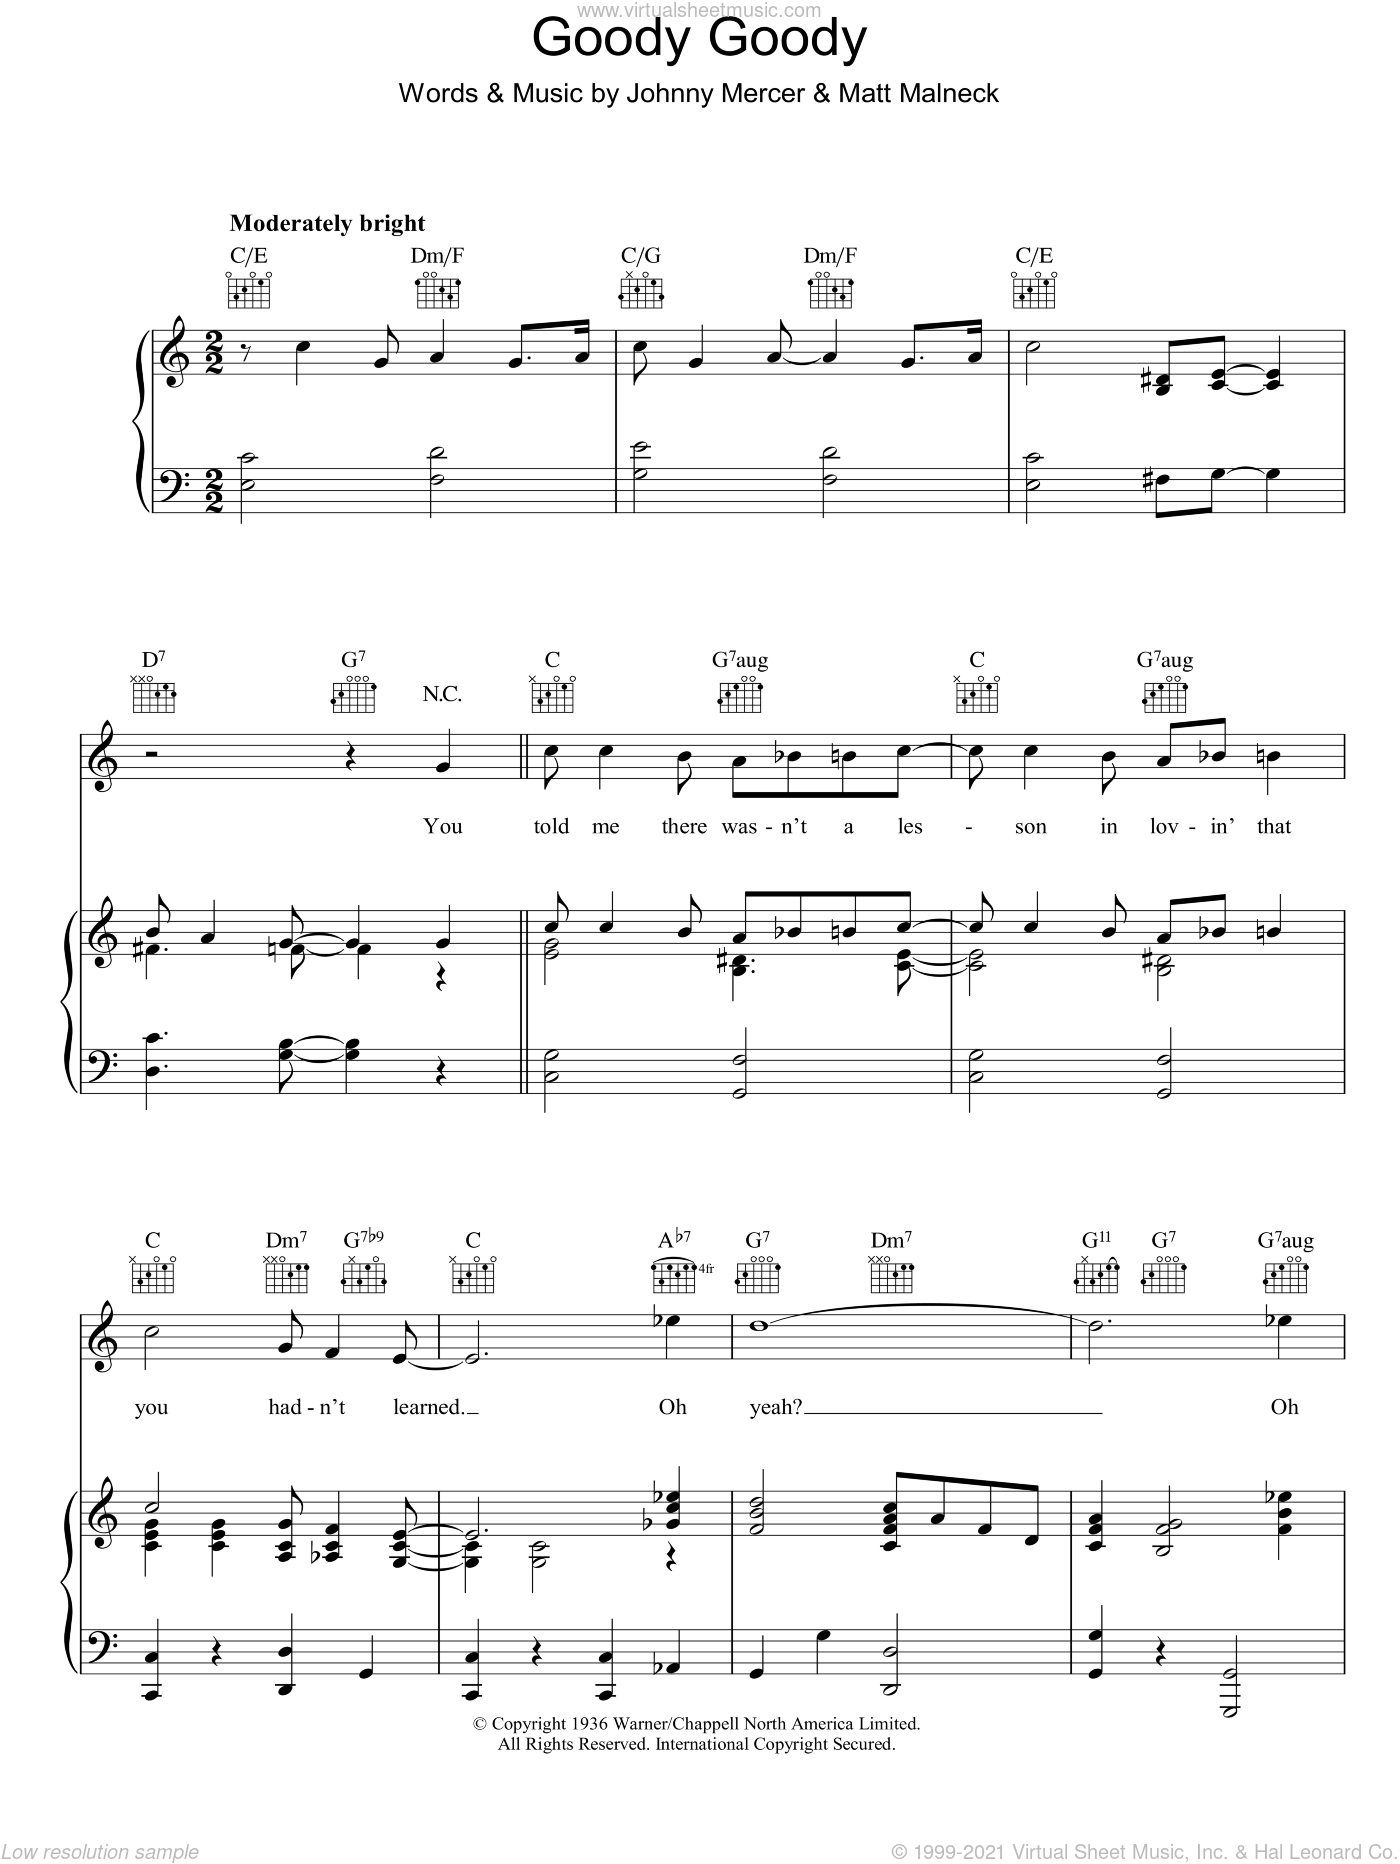 Goody Goody sheet music for voice, piano or guitar by Johnny Mercer and Matt Malneck, intermediate. Score Image Preview.